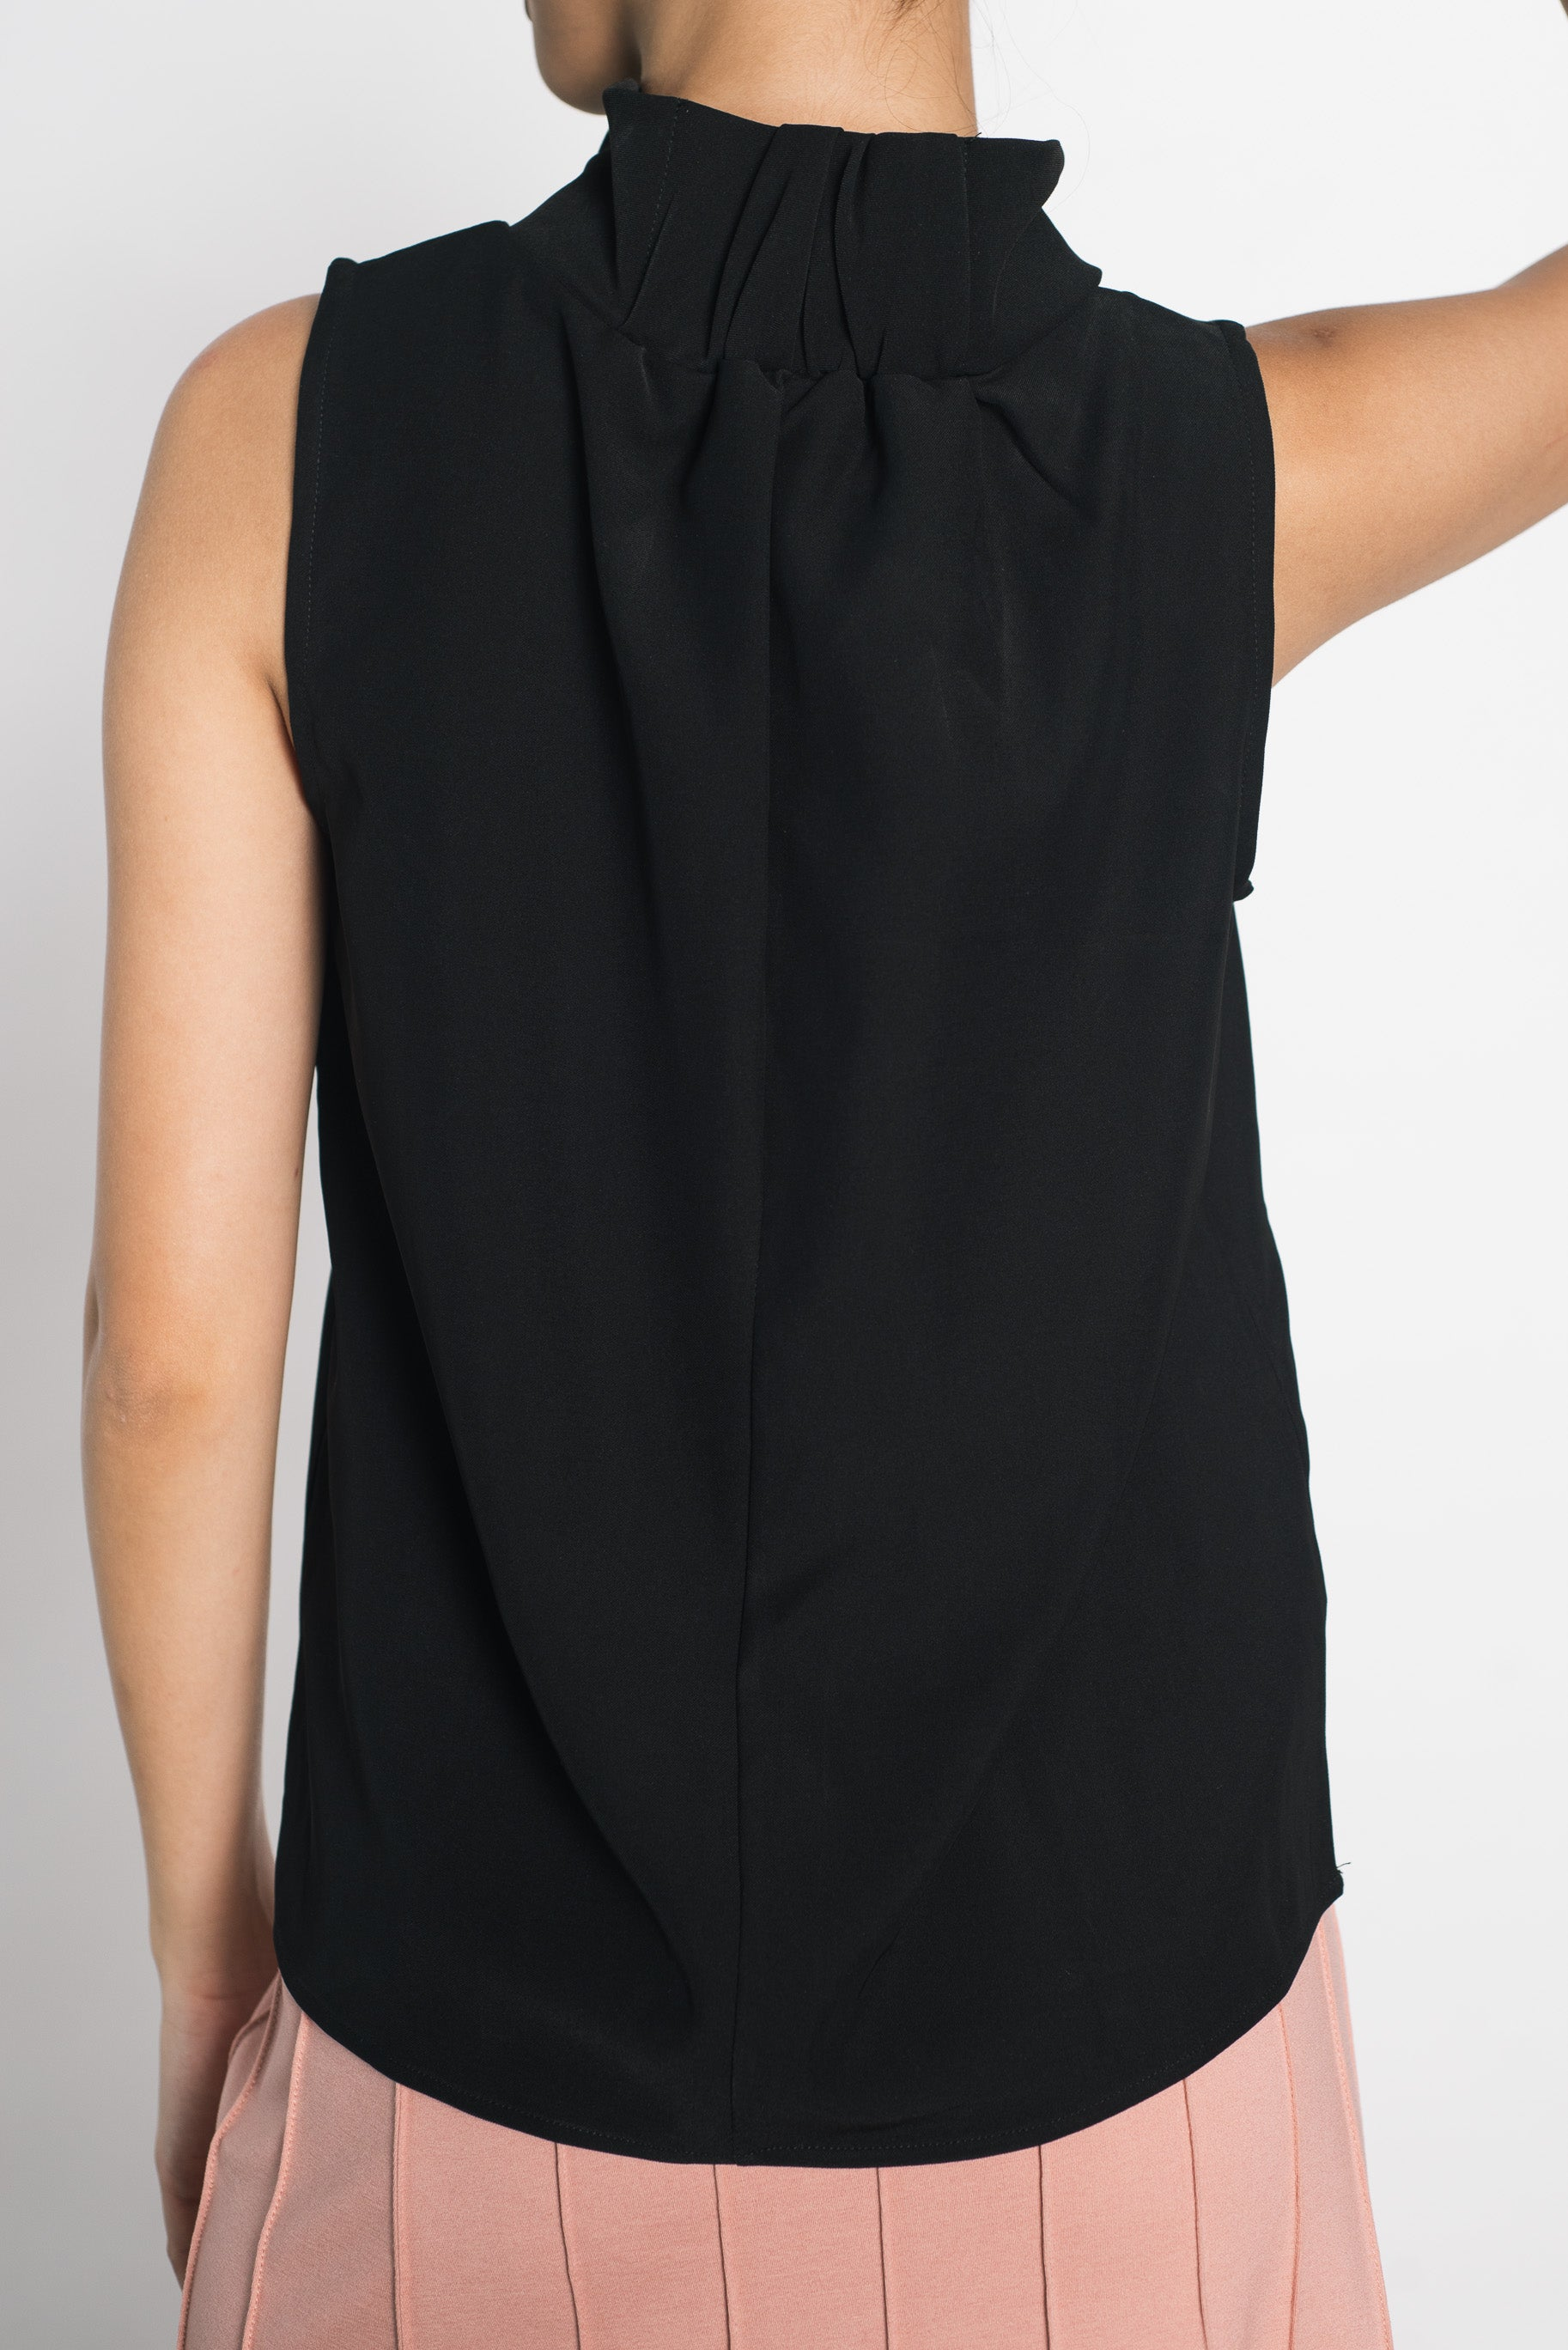 Drusilla Top in Black